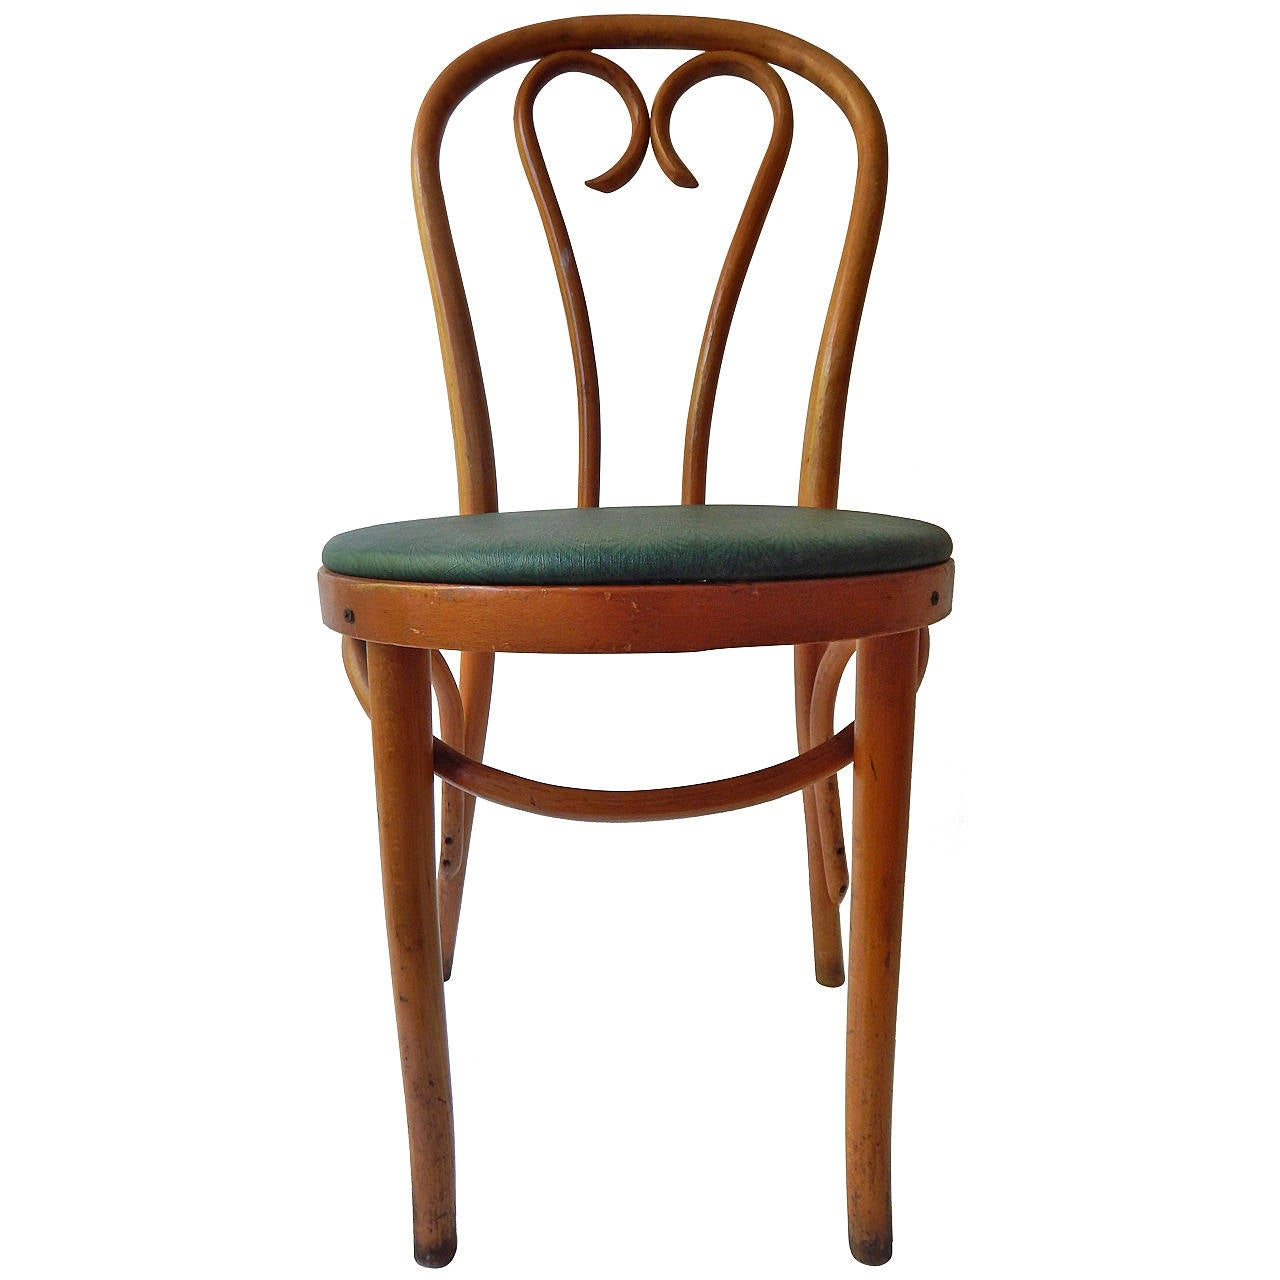 Cafe Chairs For Sale 10 Thonet Bentwood Cafe Chairs At 1stdibs